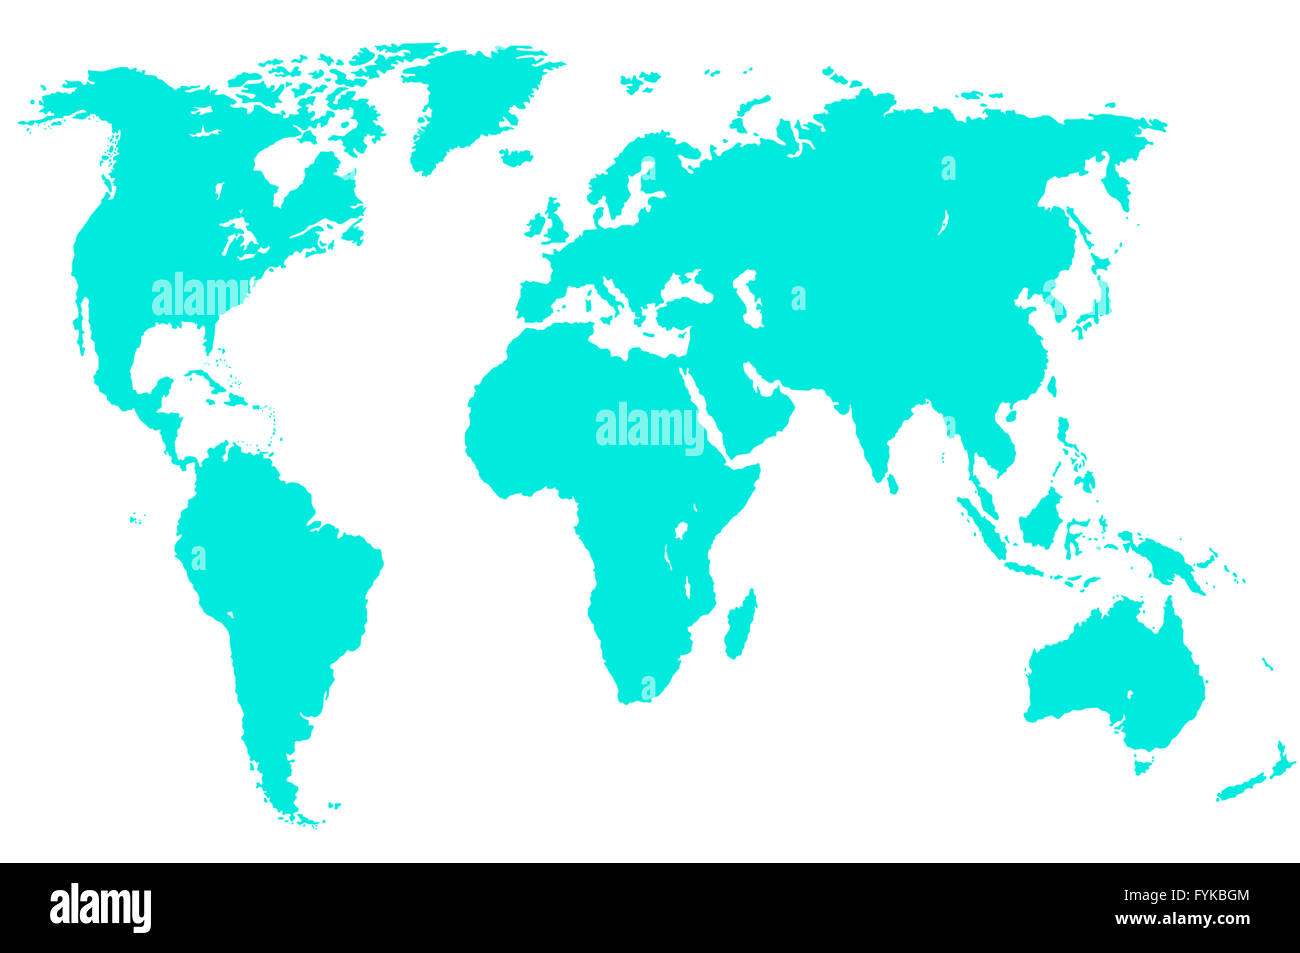 light green world map, isolated - Stock Image